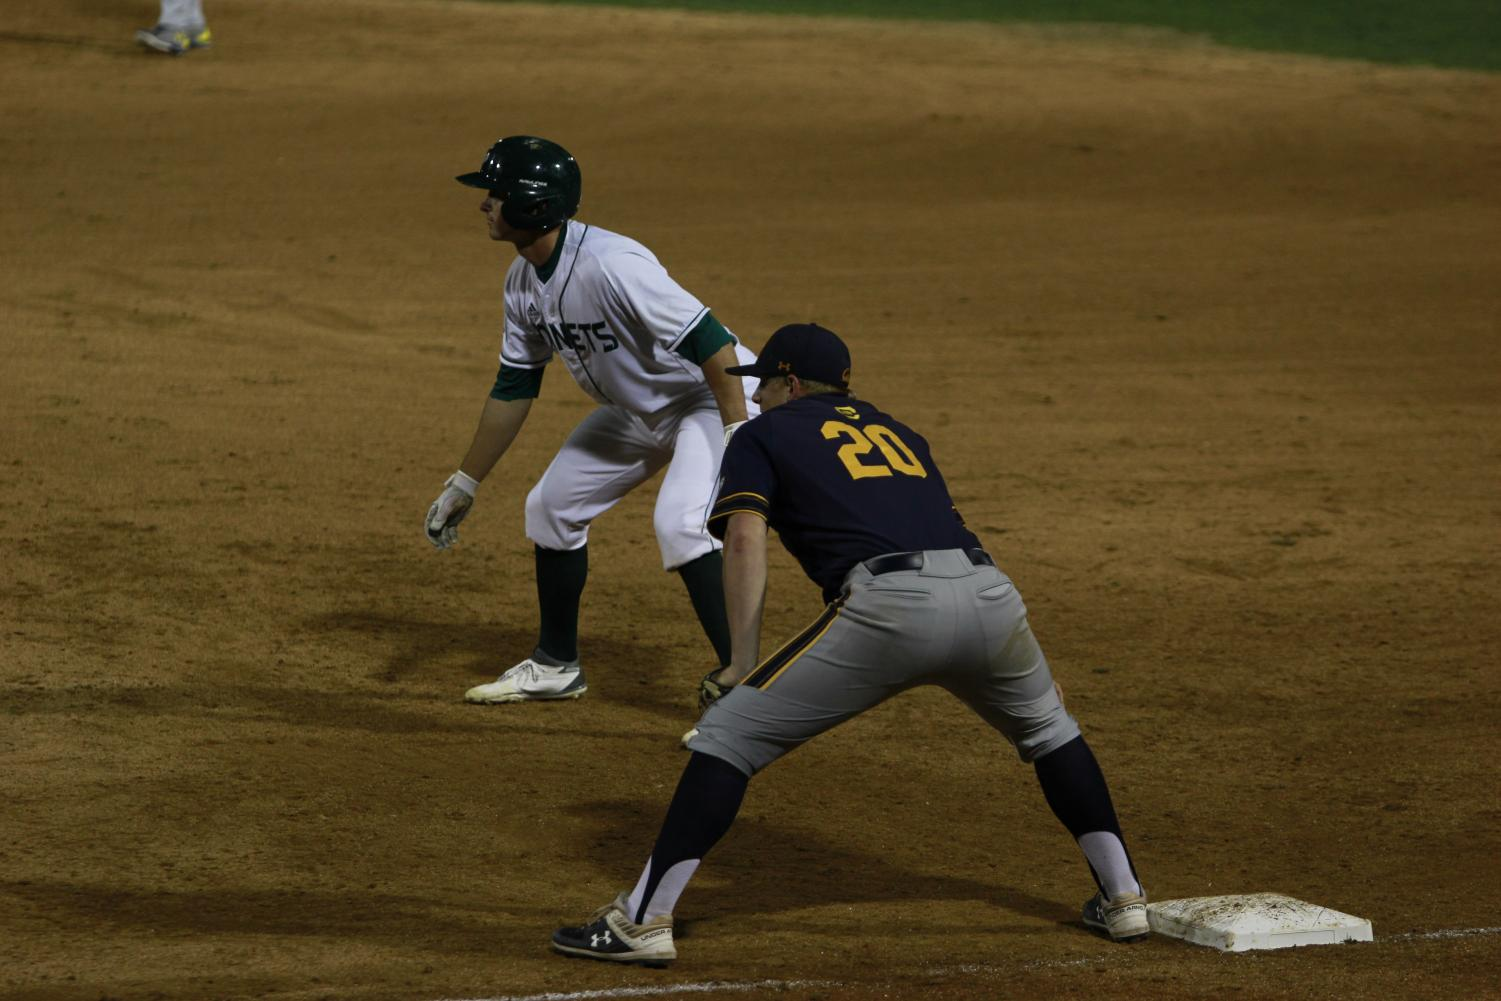 Sac+State+sophomore+catcher+Dawsen+Bacho+leads+off+from+first+base+in+a+6-0+win+over+Cal+Tuesday+at+John+Smith+Field.+Bacho+had+one+hit%2C+one+walk+and+one+RBI+in+the+victory.